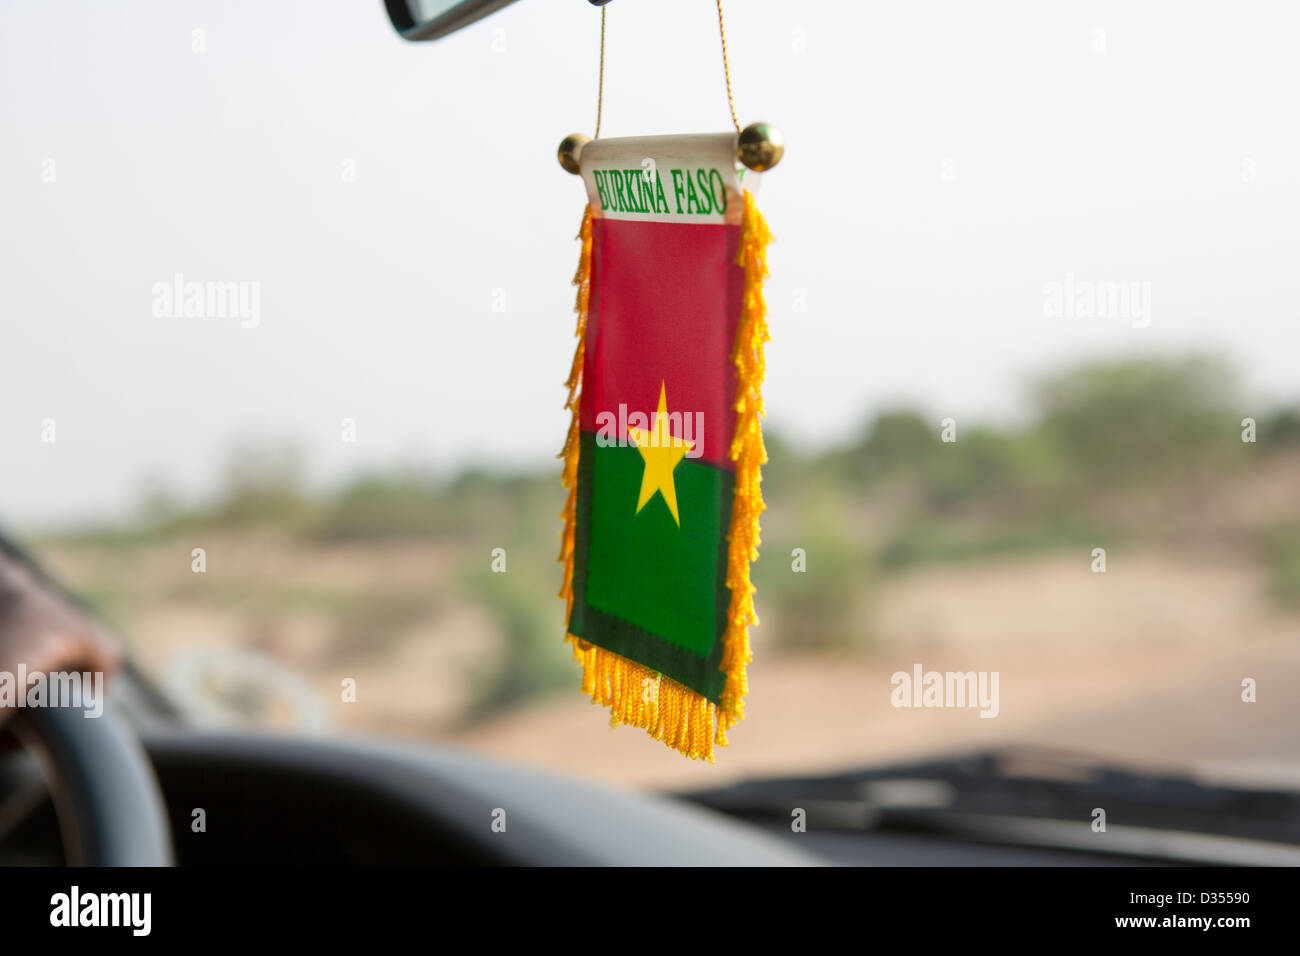 Burkina Faso, May 2012: National flag car decoration. - Stock Image